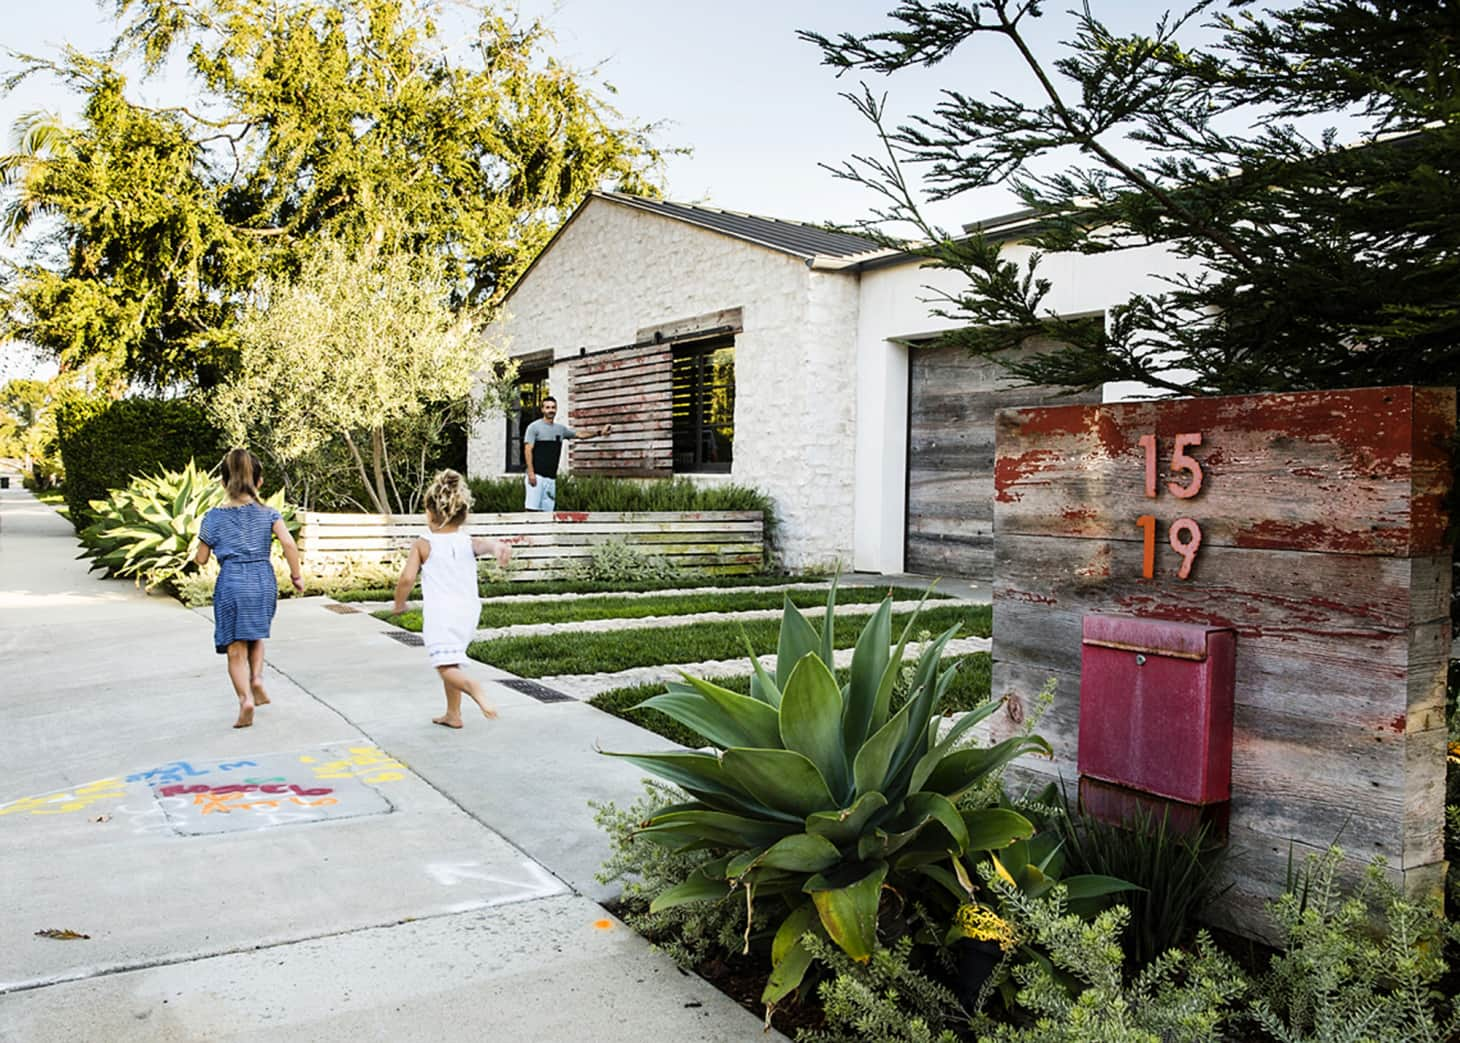 Olsen Home Exteriors: Ranch House Exterior Renovation Ideas To Steal